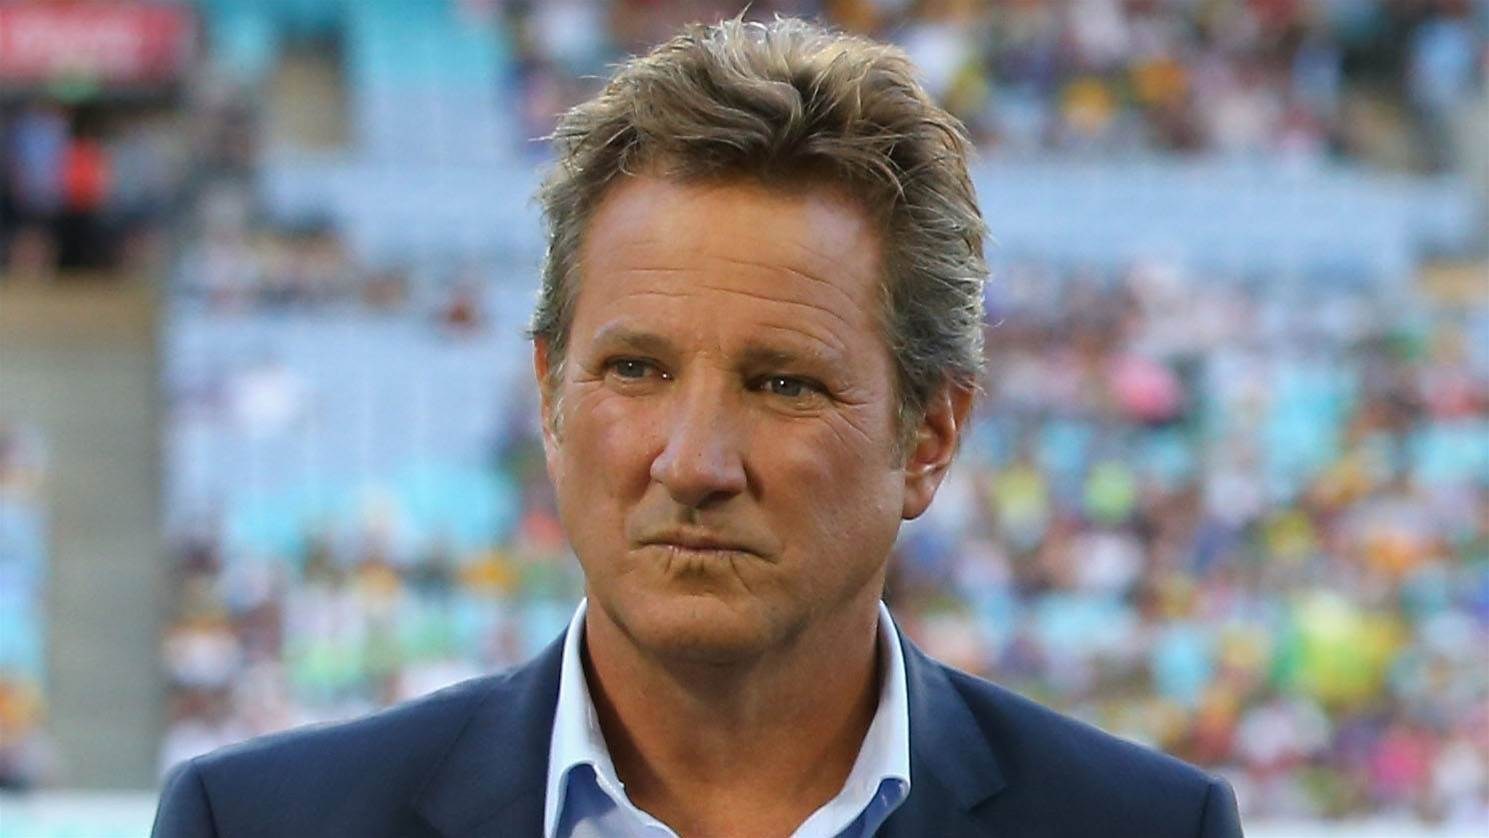 Mark Nicholas takes leave for ongoing illness